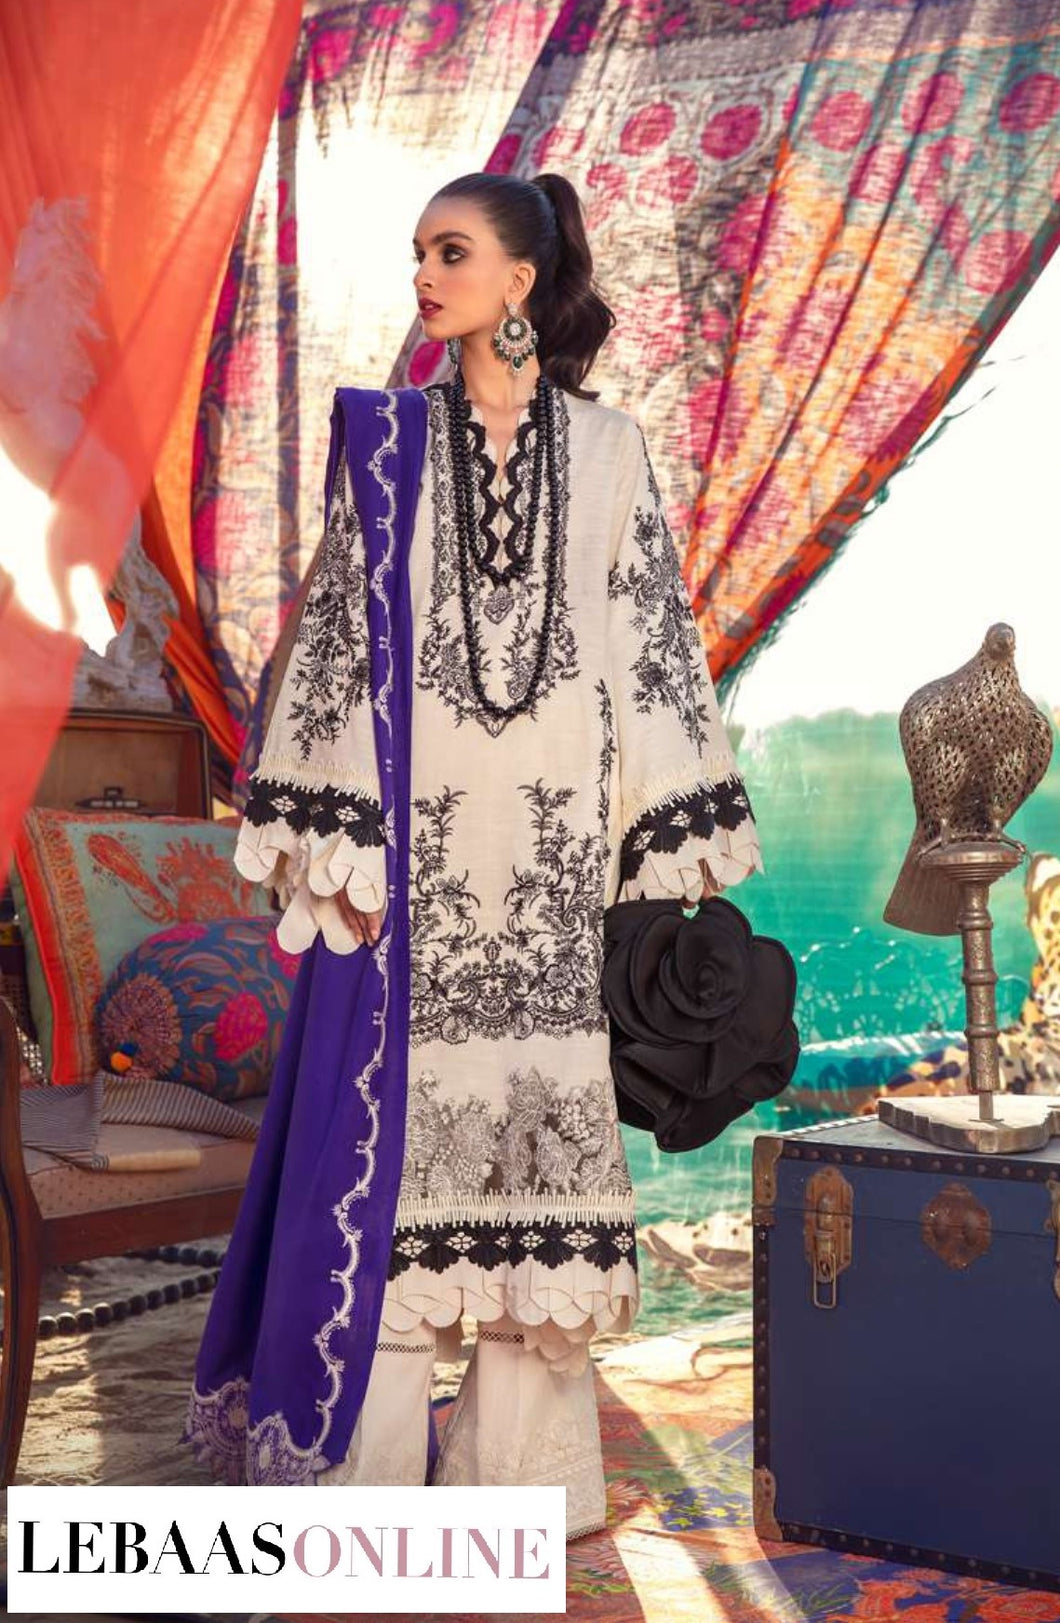 Sana Safinaz Winter Shawl '20 | Code: 4B :  creamfor shirt is comes to life is printed in delicate patterns inspired by Moroccan motifs and geometric designs. The shirt front is embroidered with intricate Moroccan motifs .Buy now SANA SAFINAZ | Muzlin Winter'20 | M203-014B-CPat great price from Lebaasonline.co.uk.